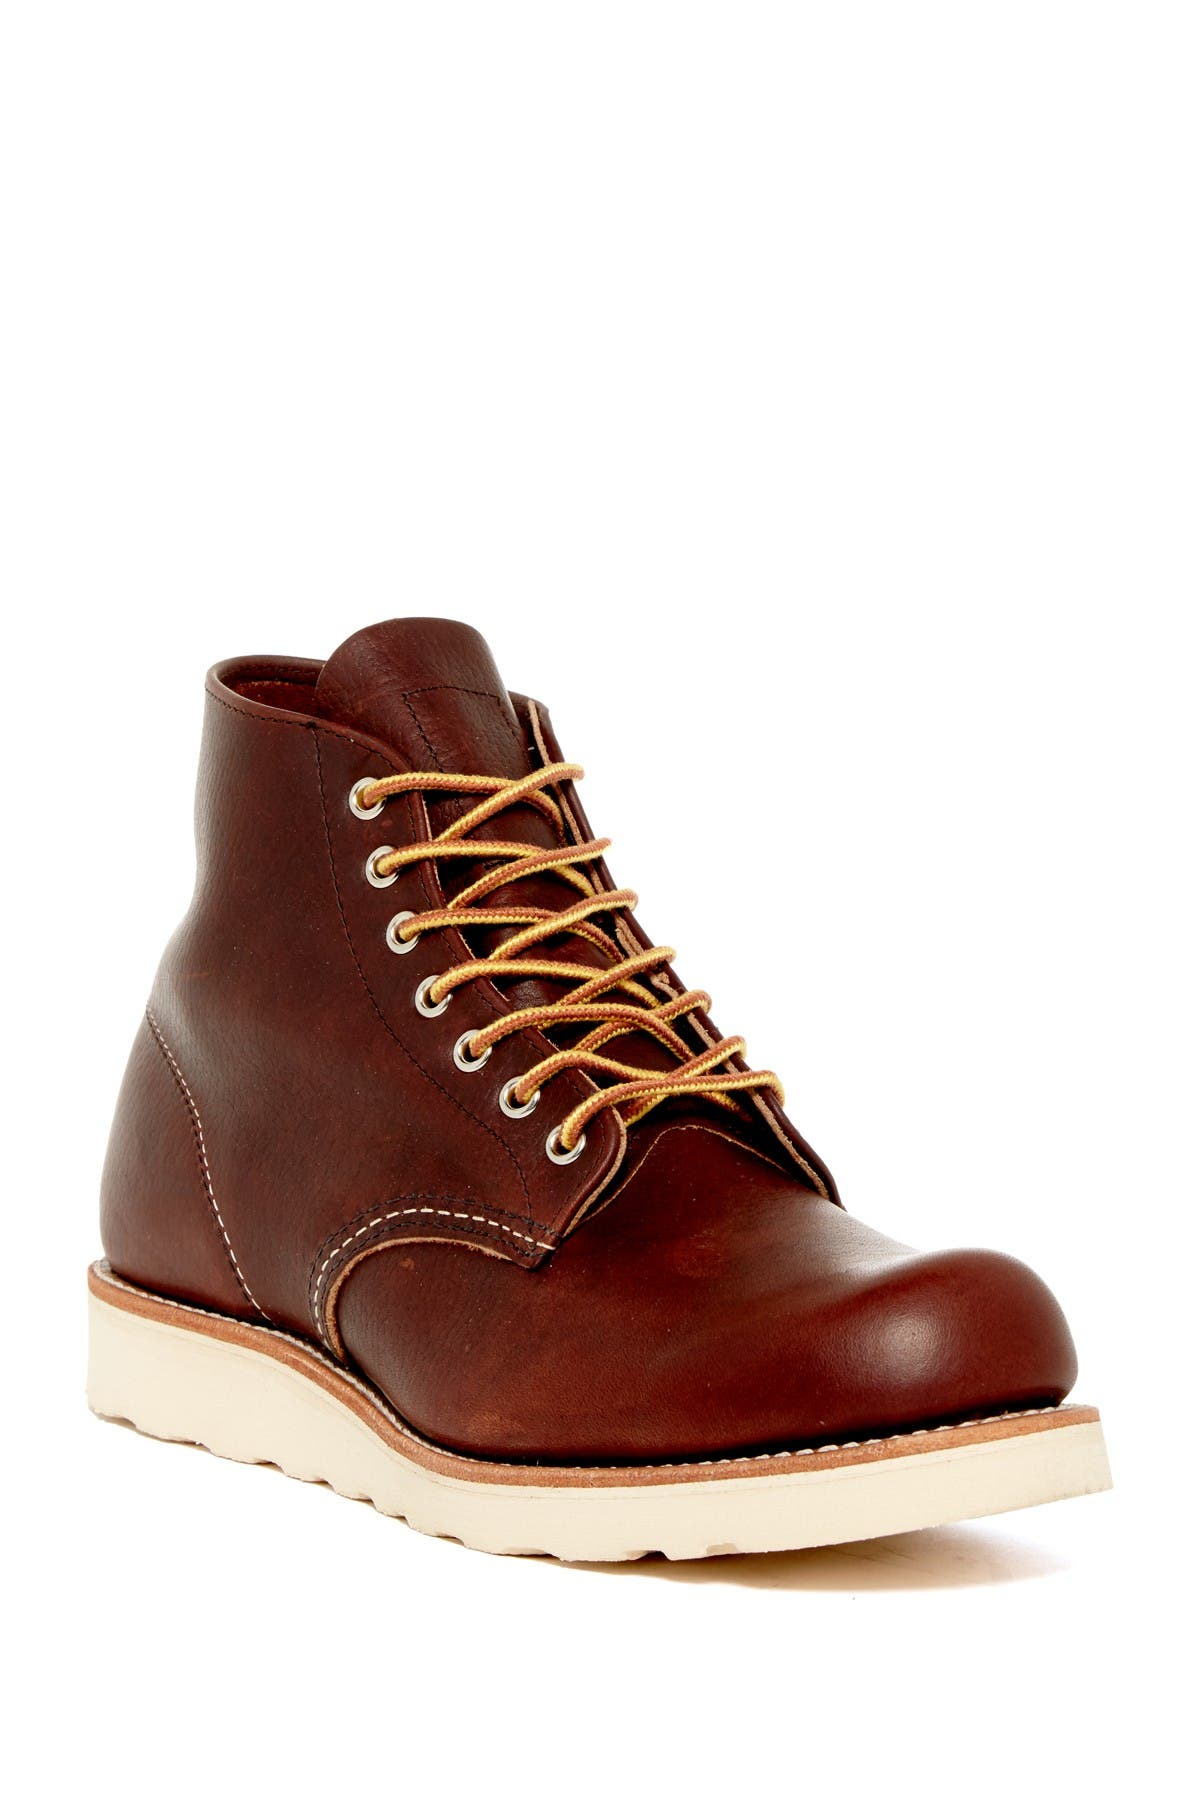 """Image of RED WING 6"""" Round Toe Burnished Boot - Factory Second"""